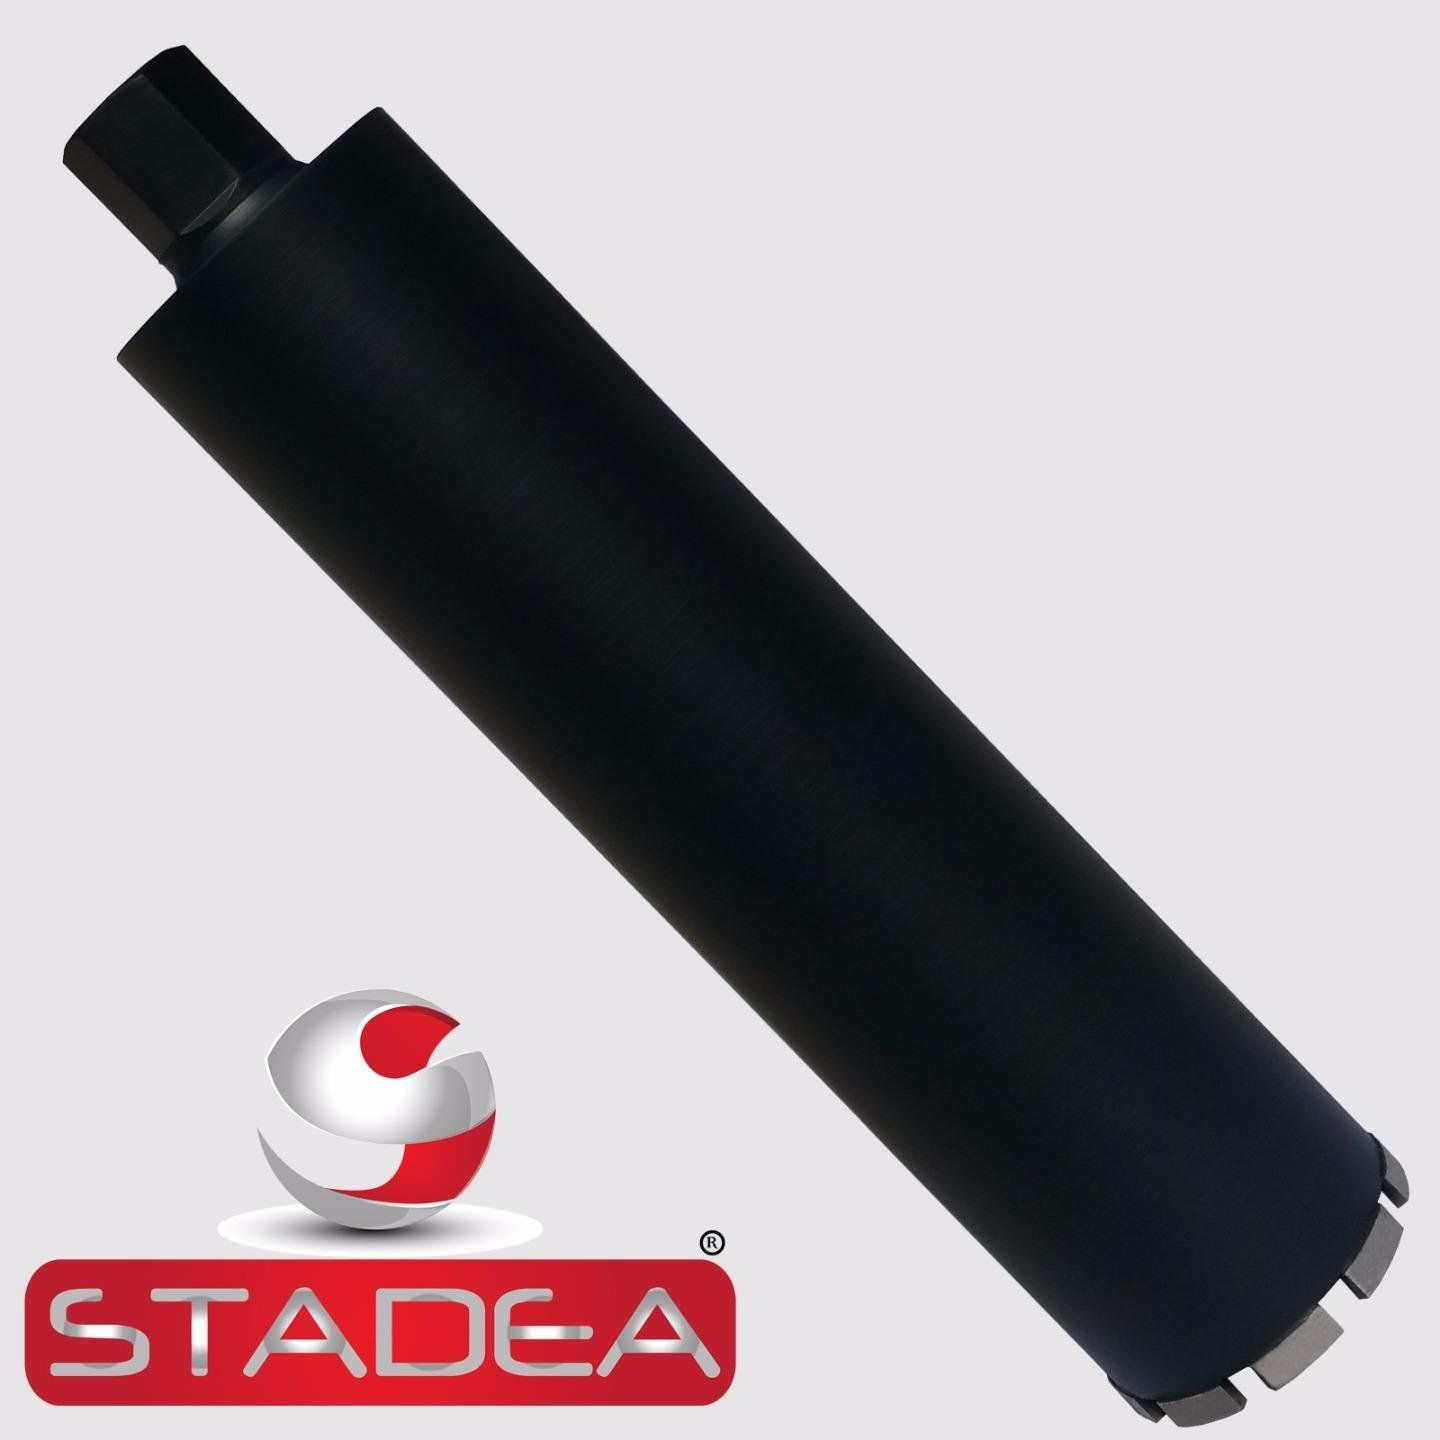 Stadea Cbd105n Diamond Concrete Hole Saw Core Drill Bit 4 Inch For Concrete Brick Block Stone Masonry Laser Welded Wet Stone Masonry Concrete Bricks